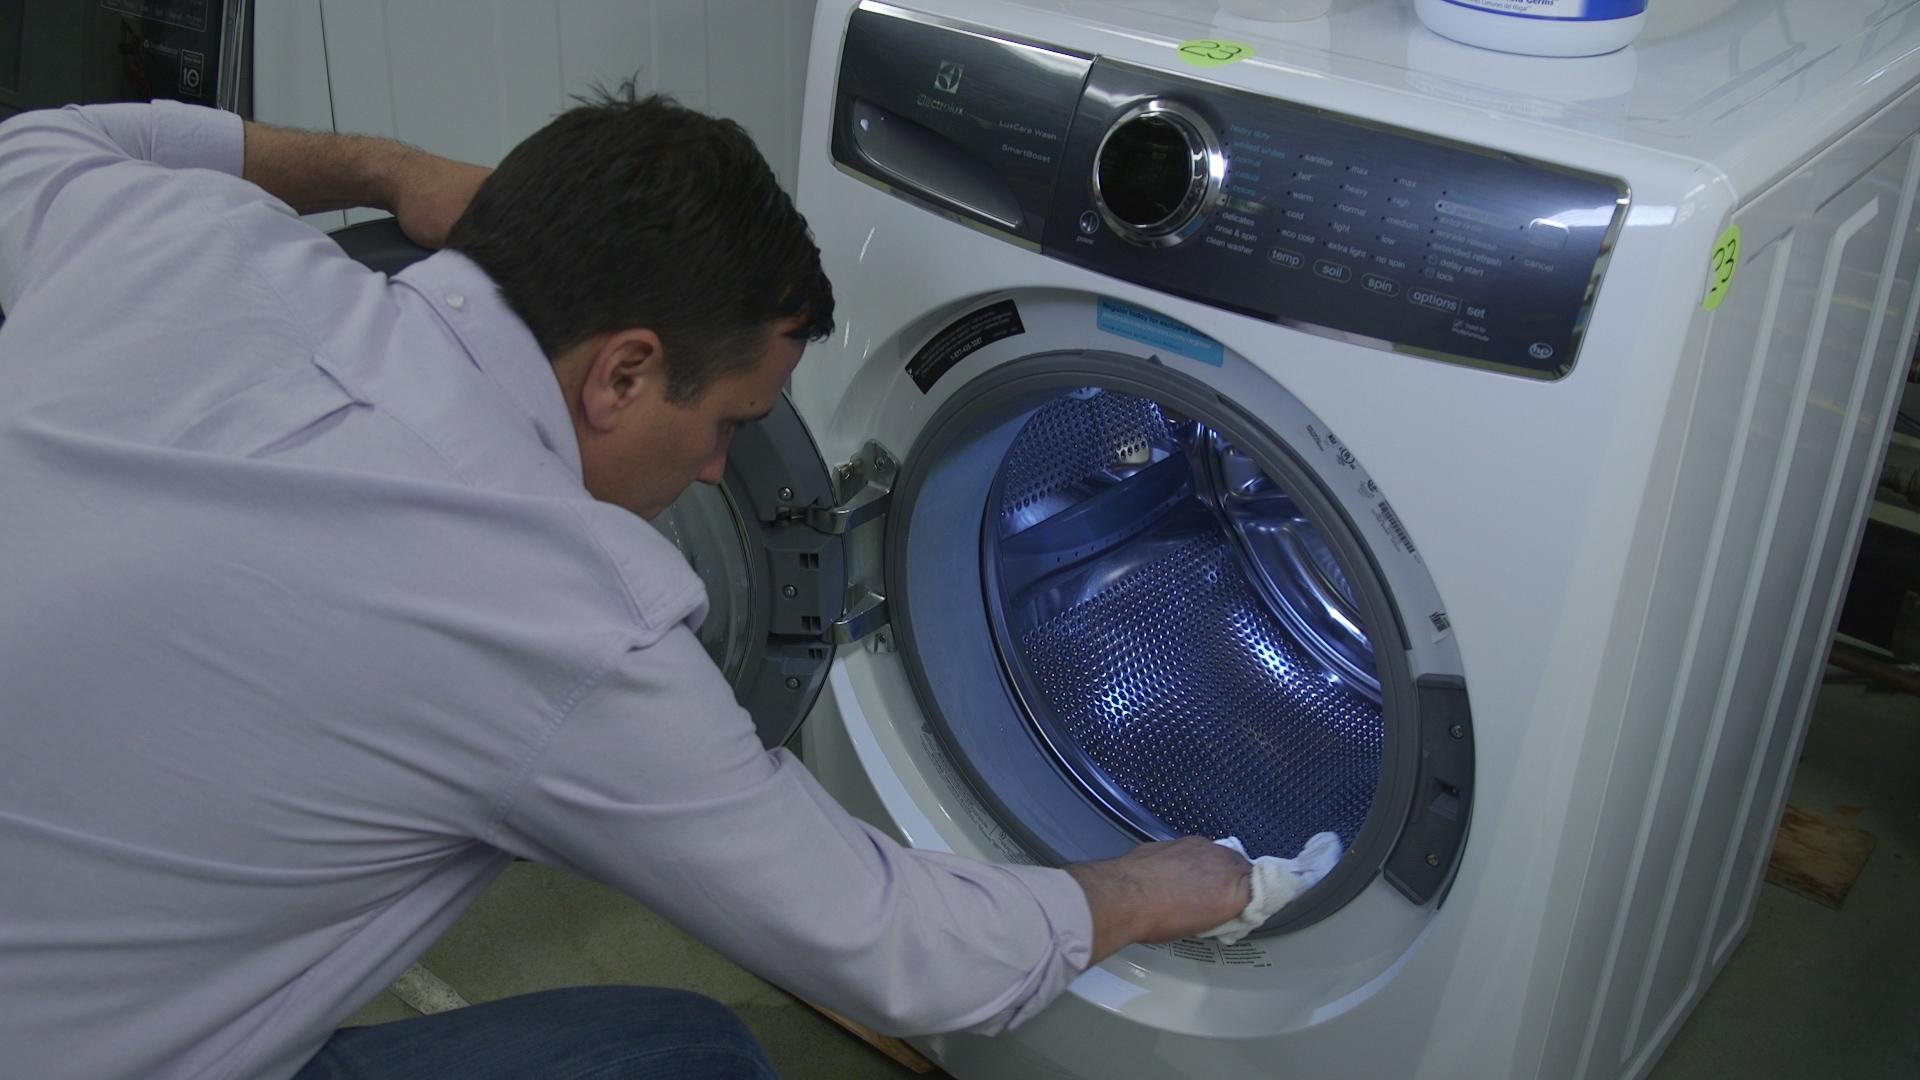 How to clean the washing machine with citric acid. How to clean the washing machine drum 68